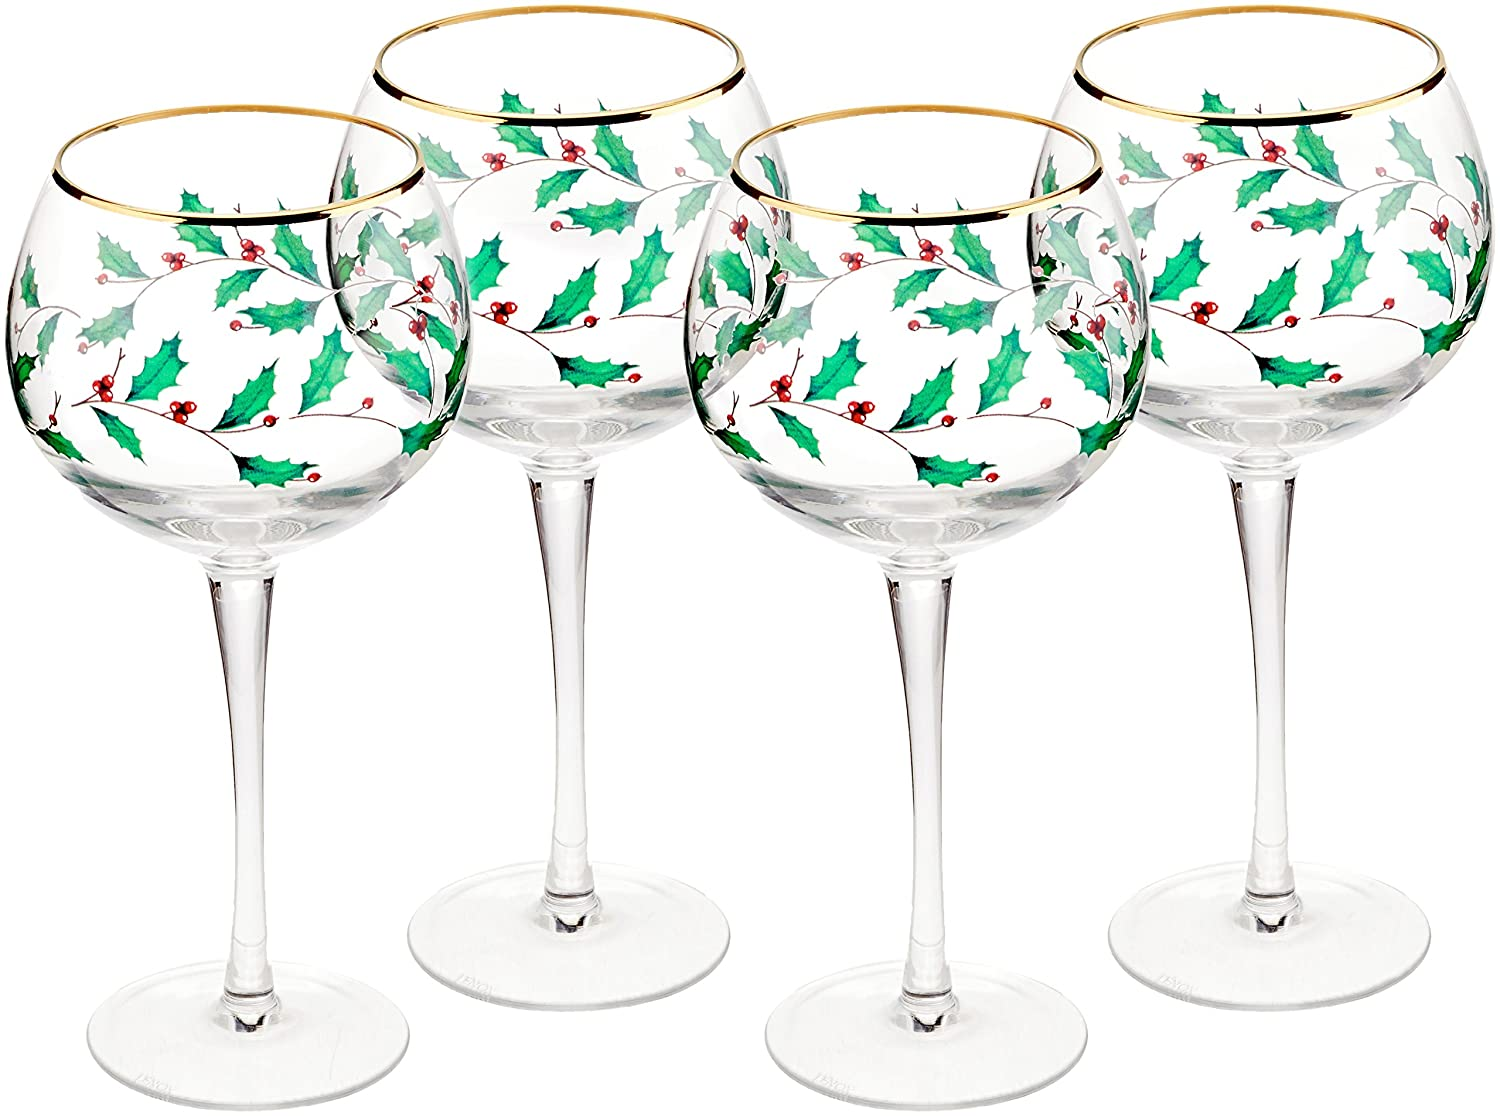 Christmas Tablescape Décor - Lenox Holiday holly design gold rimmed balloon wine stemware - Set of 4